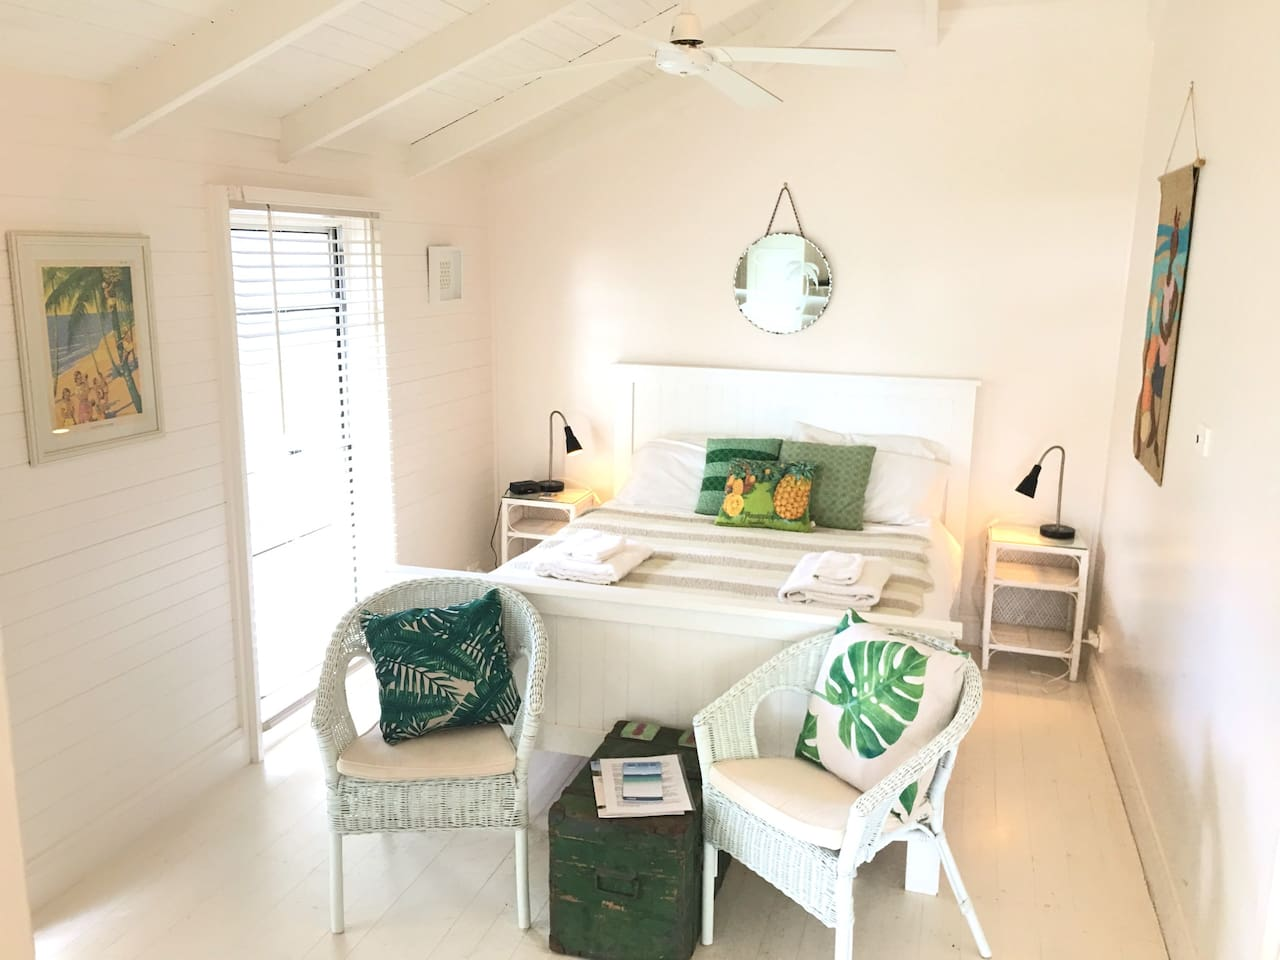 All white & airy with a tropical feel, the Porch Room @ Huskisson B&B has it's own private entrance.